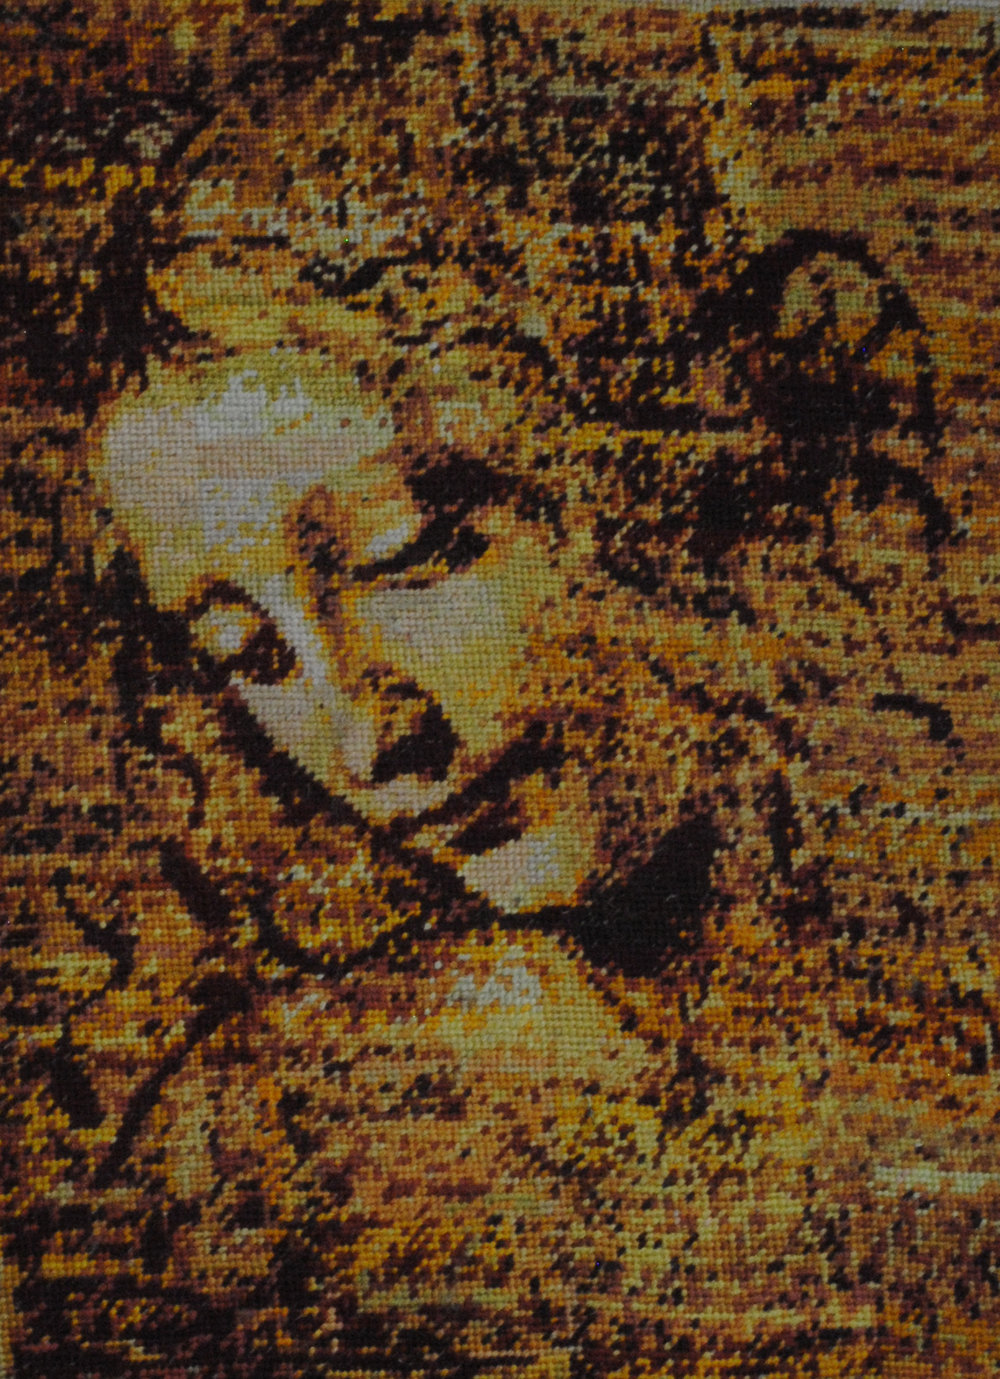 Holly Day's needlepoint is a rendering of one of Leonardo de Vinci's sketches. It shows the head and shoulders of a young woman long, loose hair spread around her, as if blown by wind. The thread is gold, brown, and black. The woman is facing down and seems peaceful, and there appears to be a gentle light on her face.